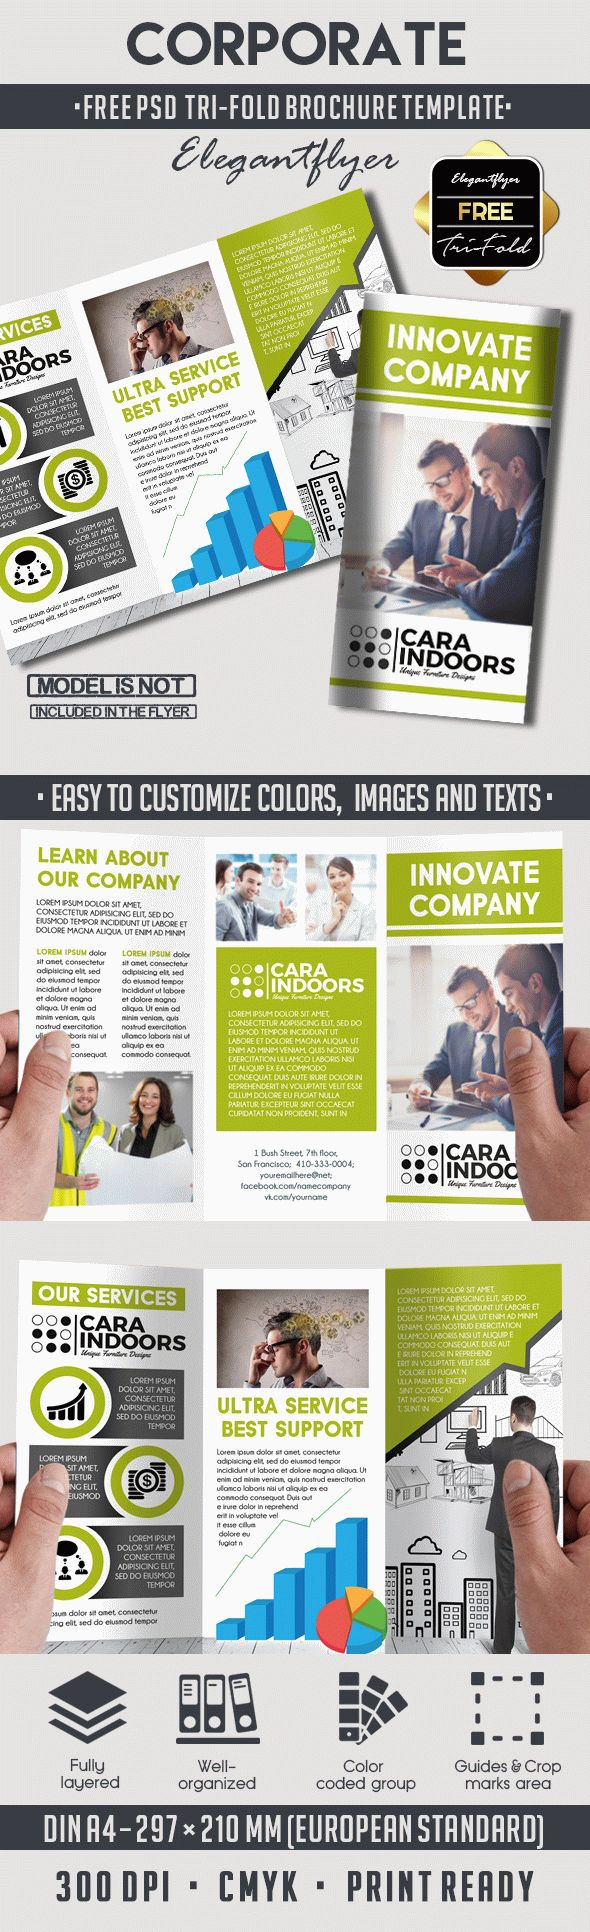 corporate brochure template free - corporate brochure design psd by elegantflyer